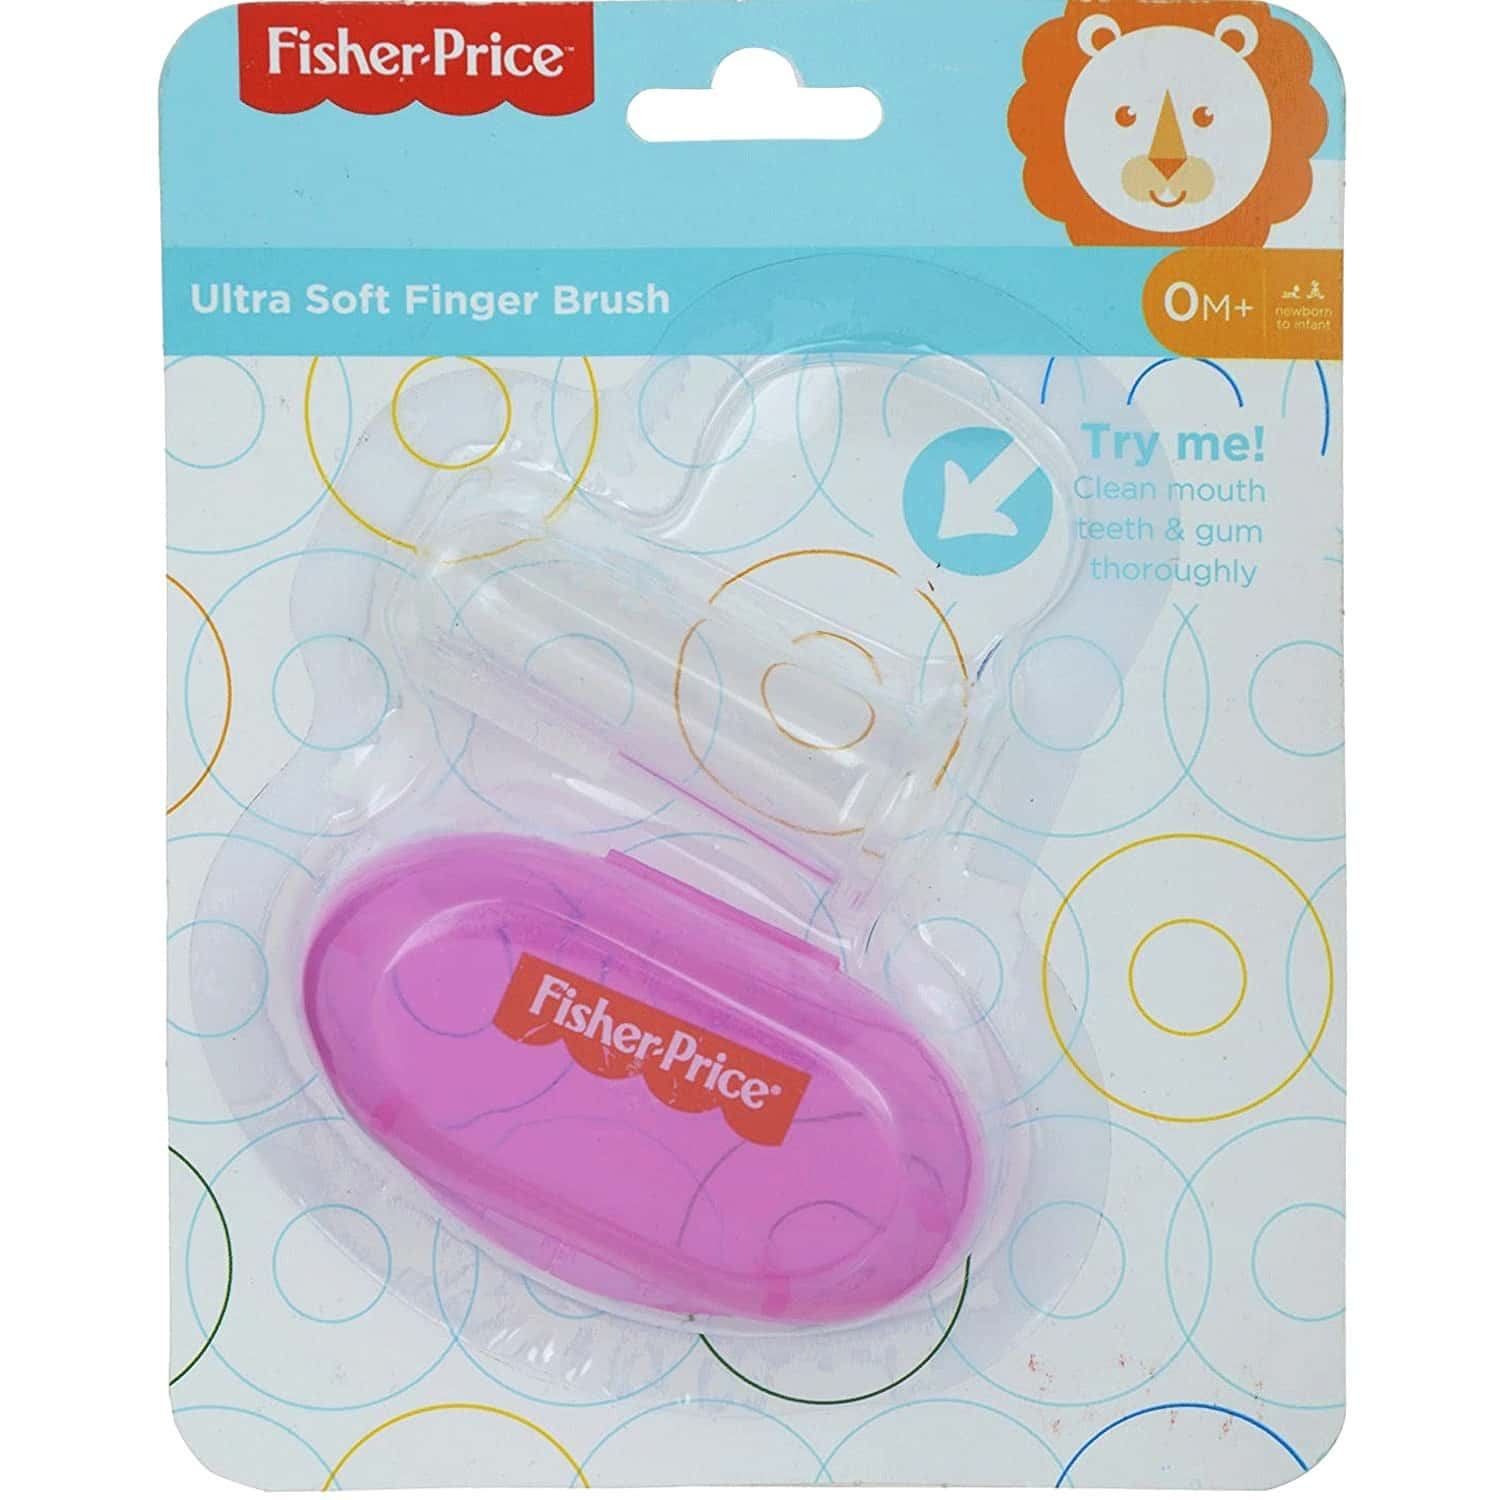 Fisher Price Silicone Baby Finger Brush With Case, One Size, Pink